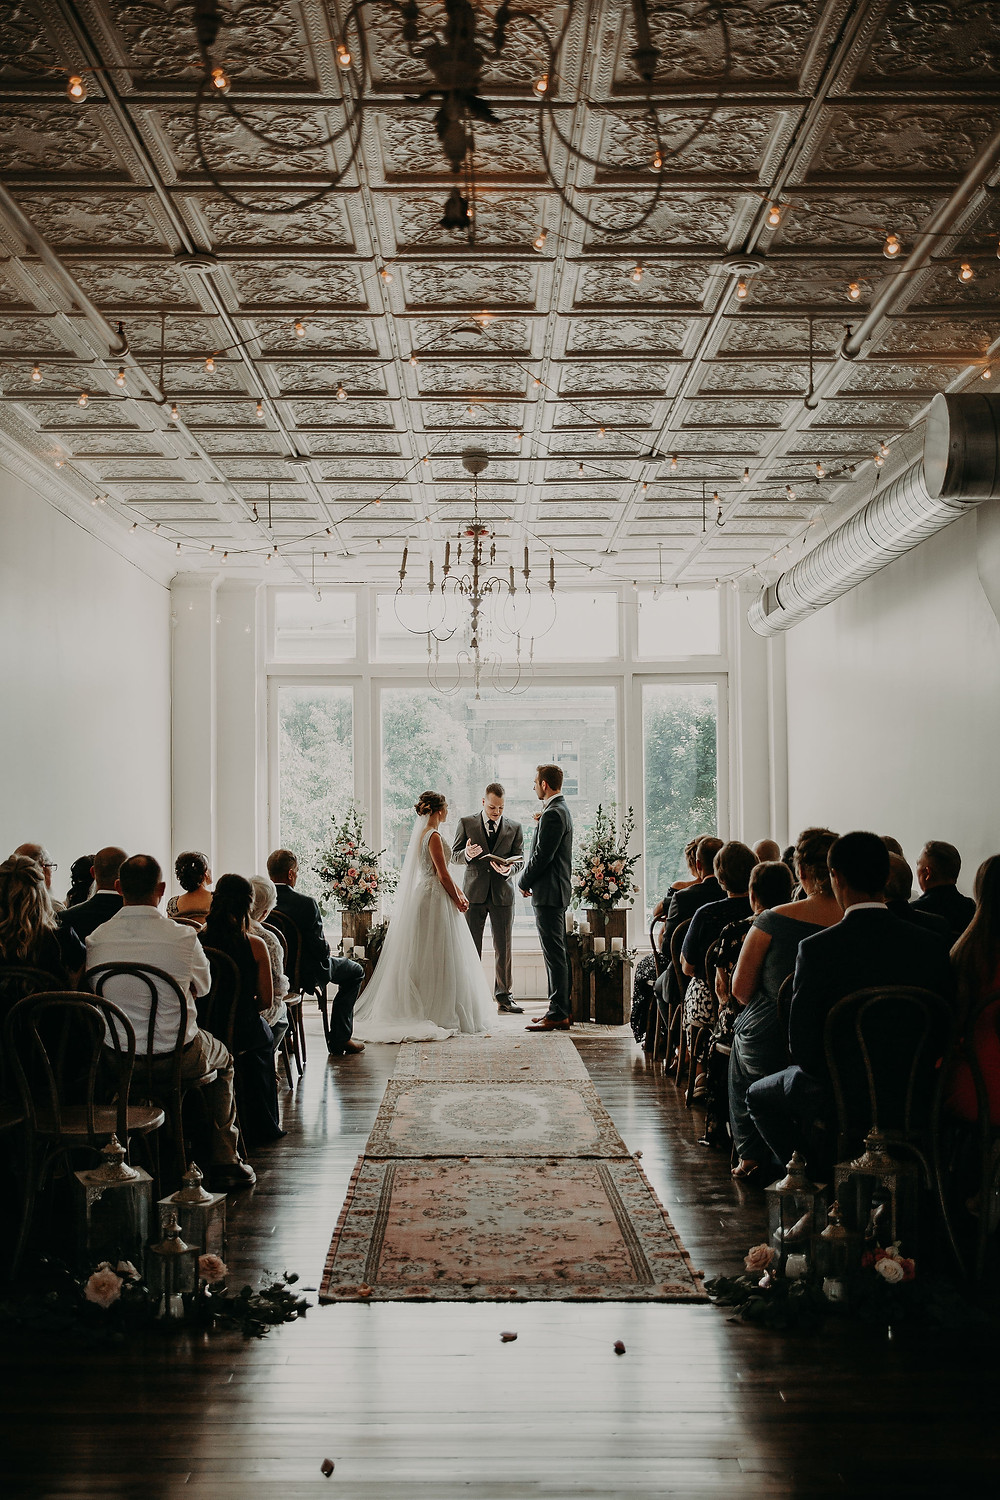 Small wedding ceremony: Summer Small Wedding at The Lincoln Loft by Pretty Little Vintage Co.